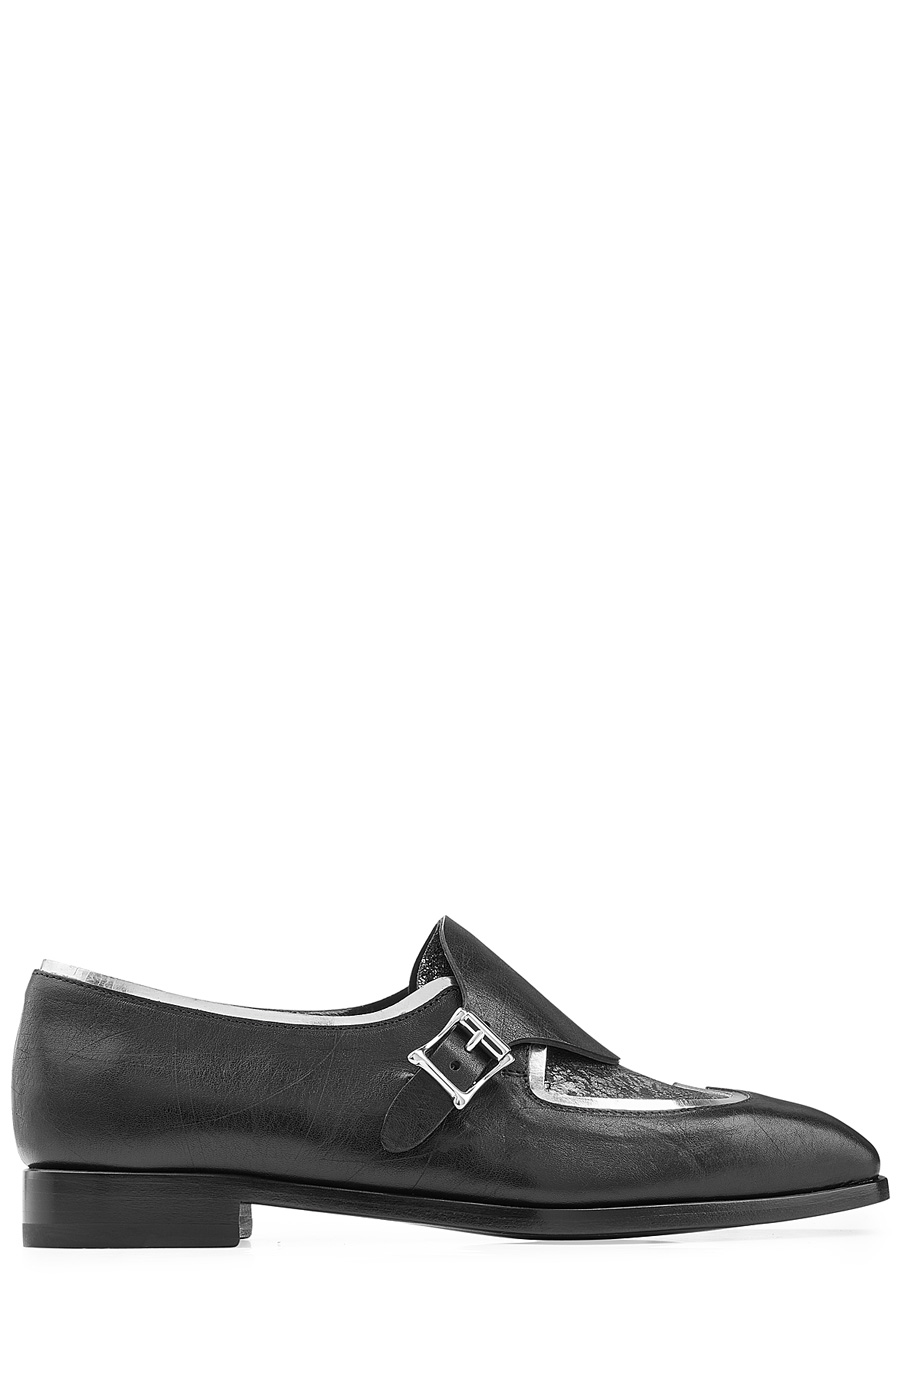 Rupert Sanderson Romany Leather Loafers In Black